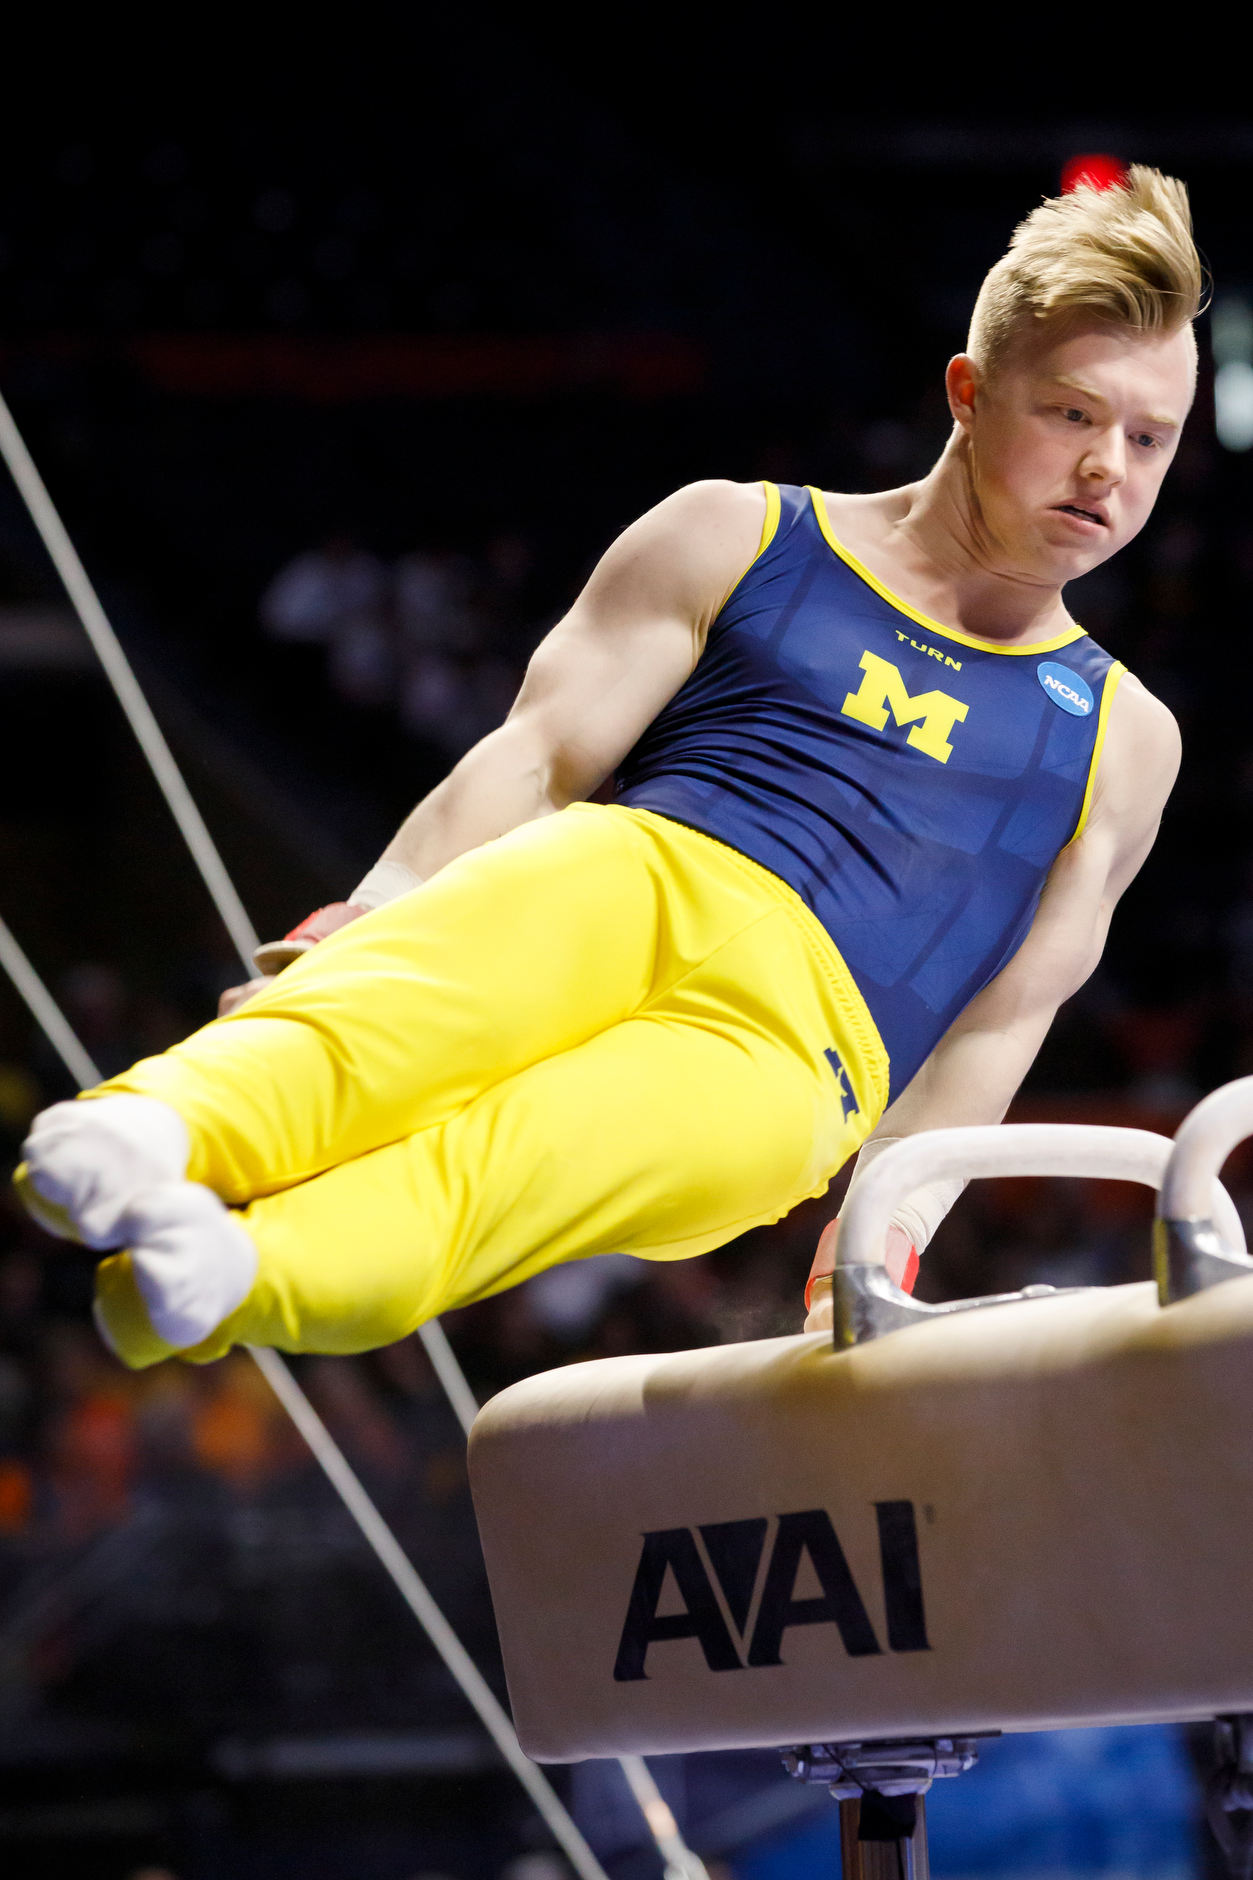 Michigan's Cameron Bock competes on the pommel horse at the NCAA Men's Gymnastics Championships on Saturday, April 20, 2019, at the State Farm Center in Champaign, Illinois. (Photo by James Brosher)